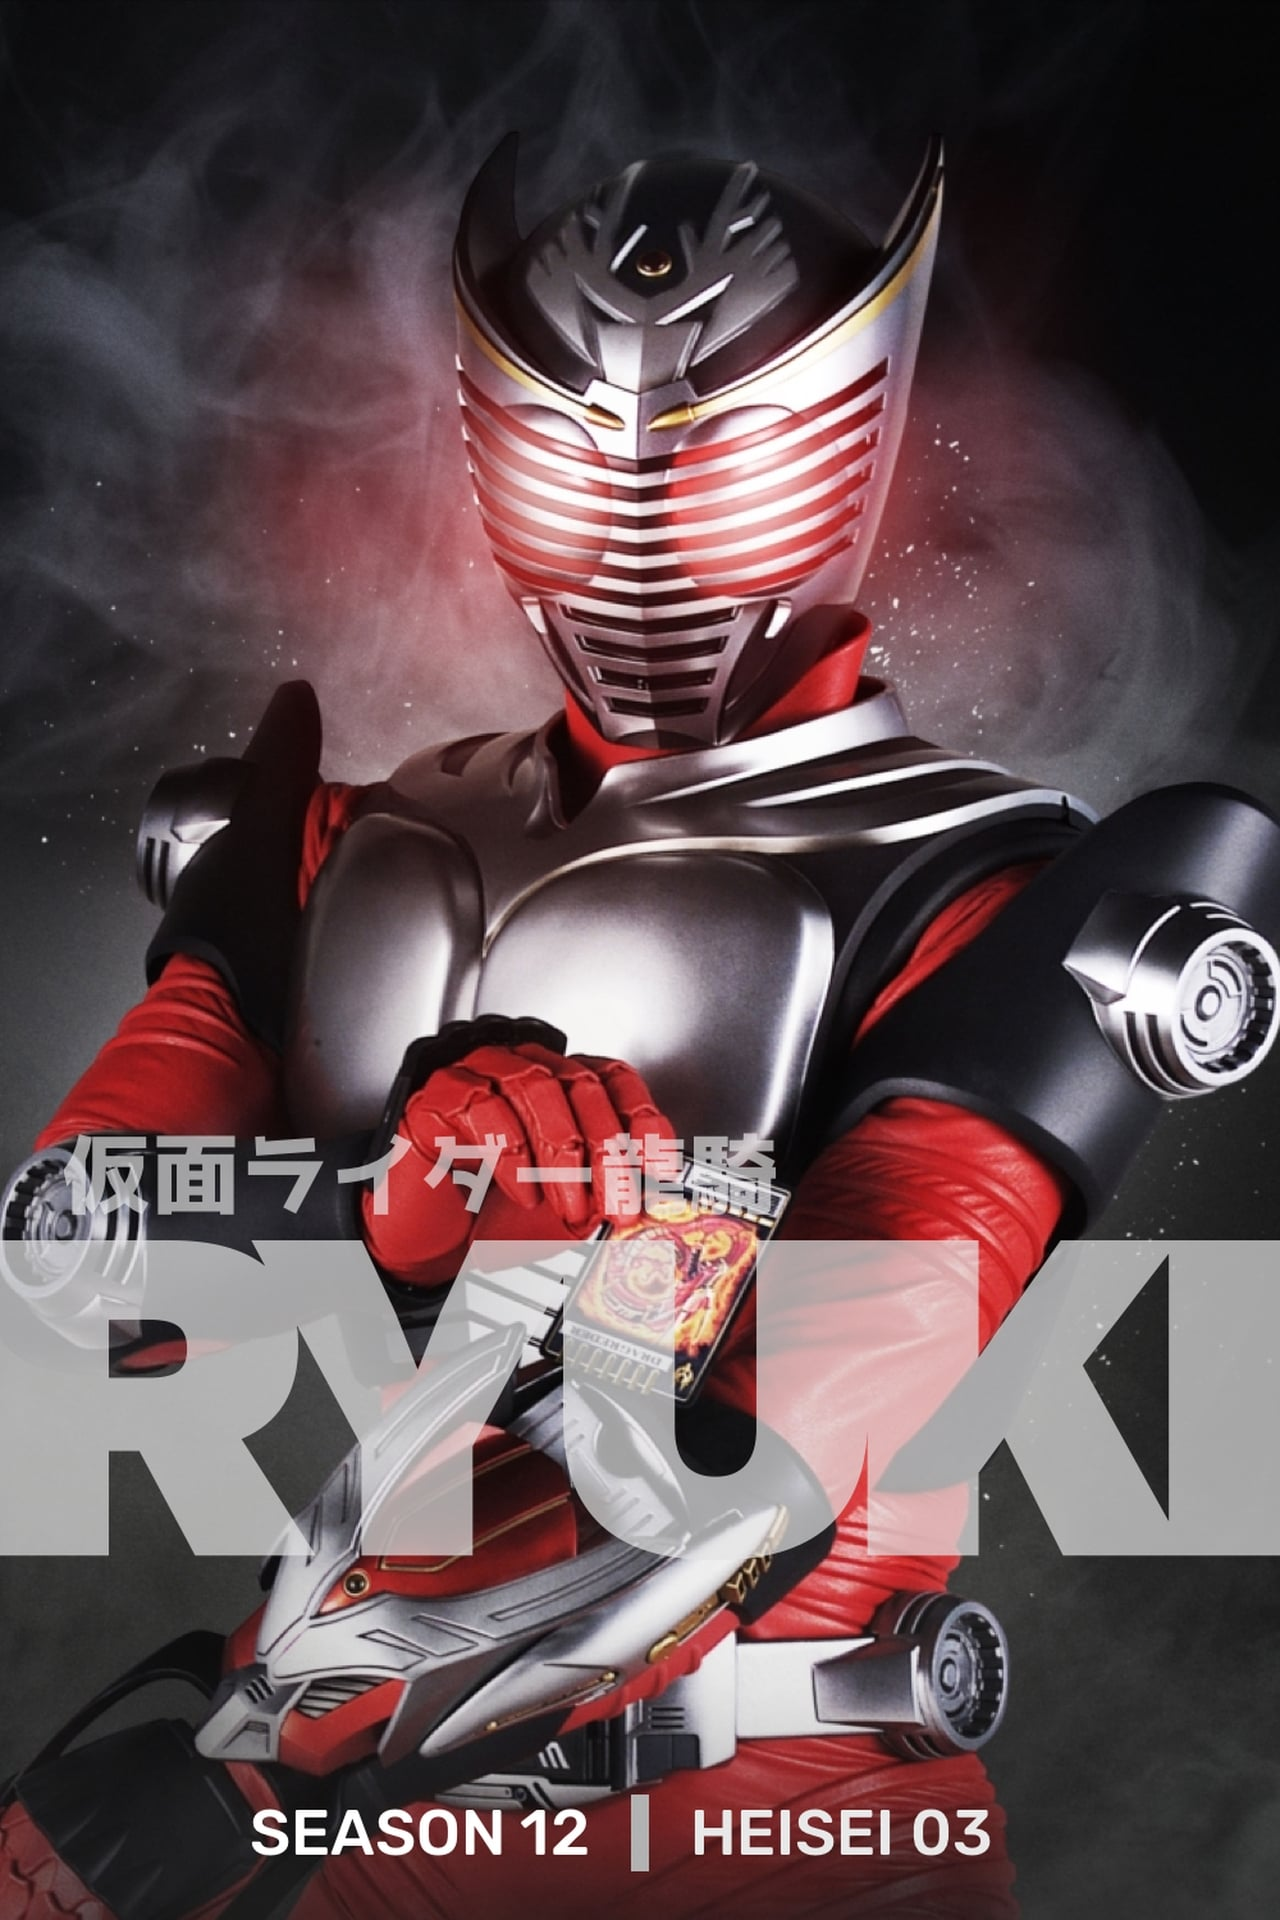 Watch Kamen Rider Season 12 Online